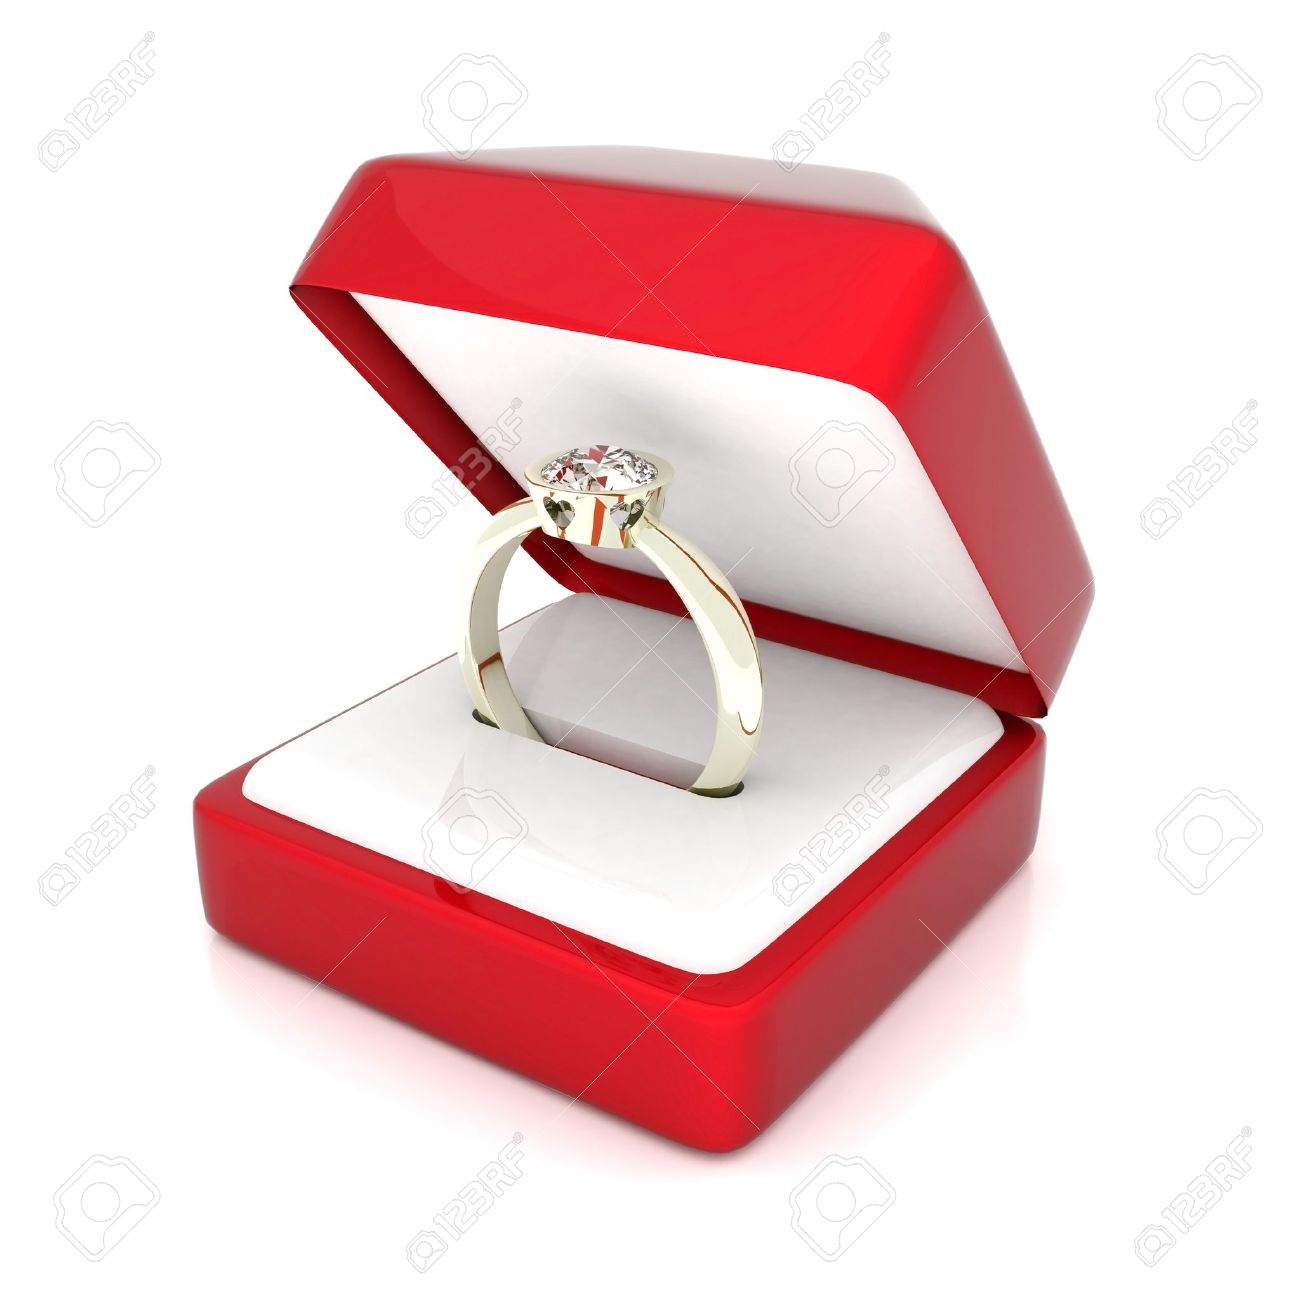 Marriage Ring In Box